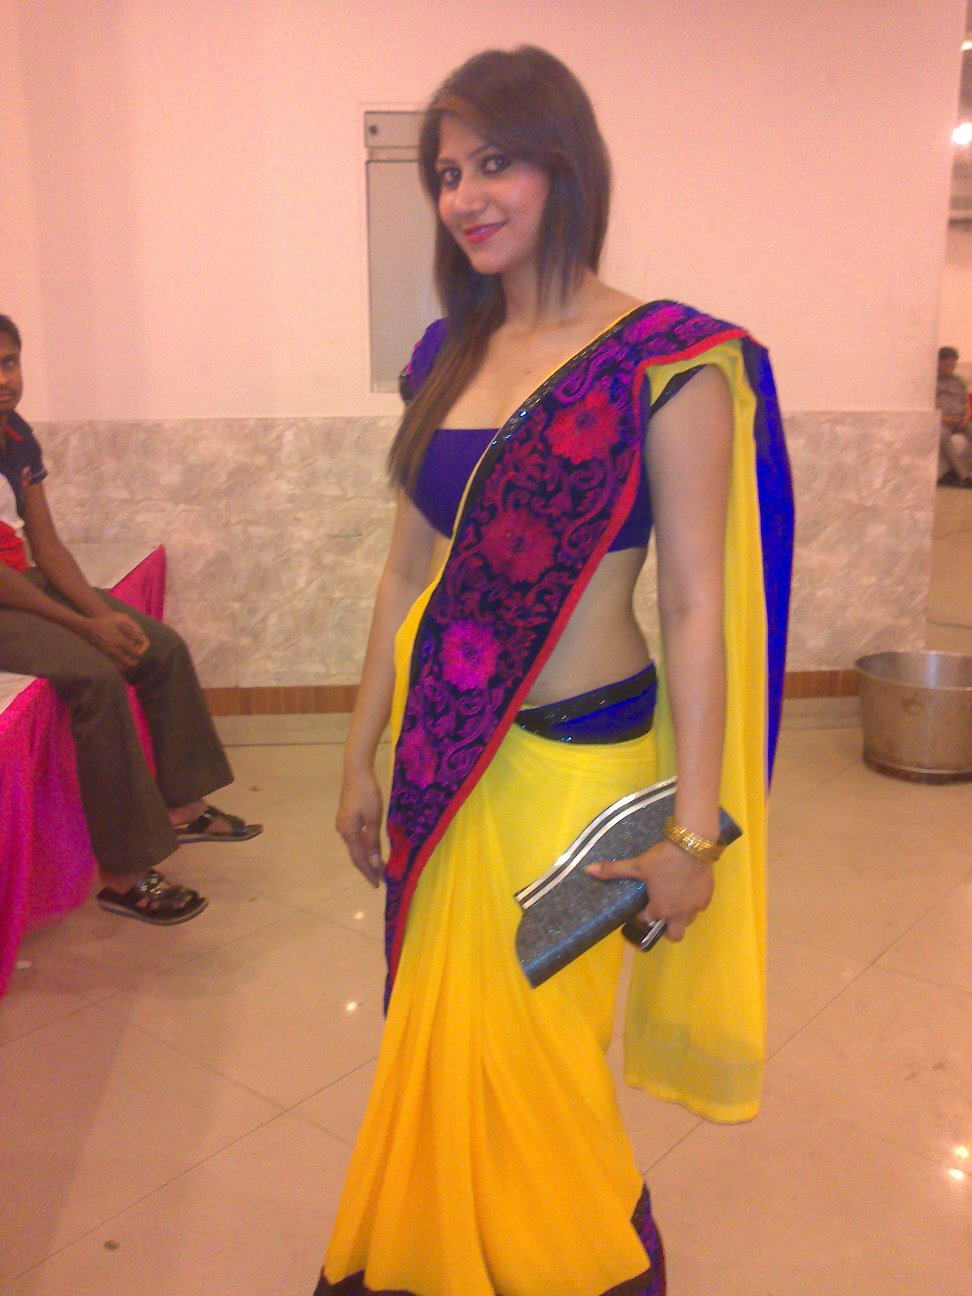 Possible Girls in saree naked final